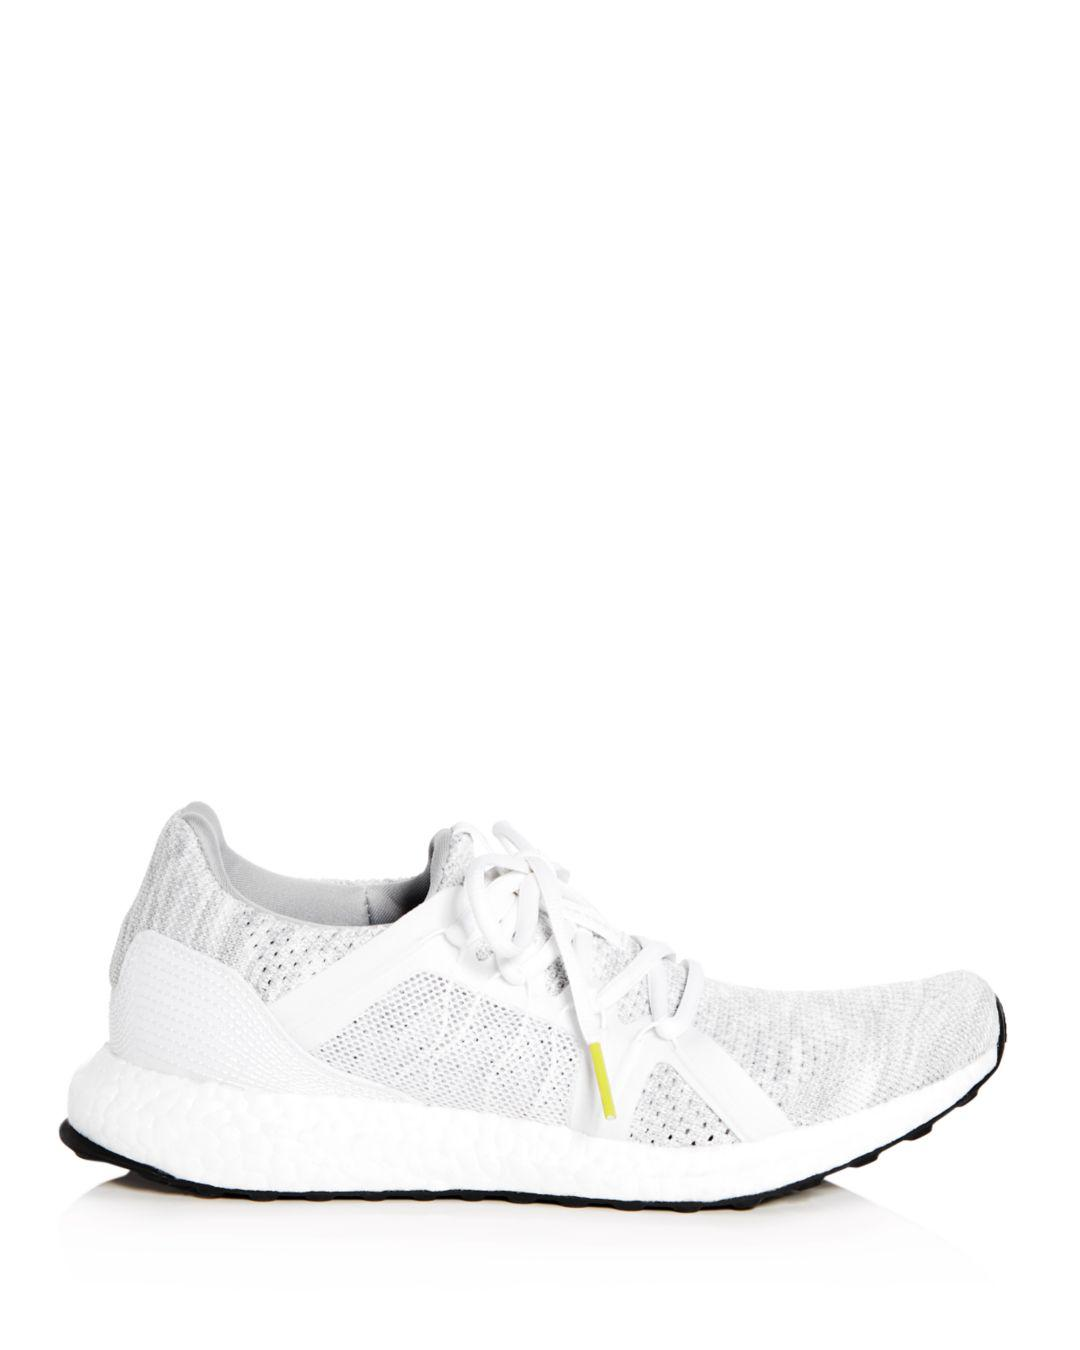 310083bc58e6b ... ireland lyst adidas by stella mccartney ultraboost parley knit lace up  sneakers in white 1fc33 f8f06